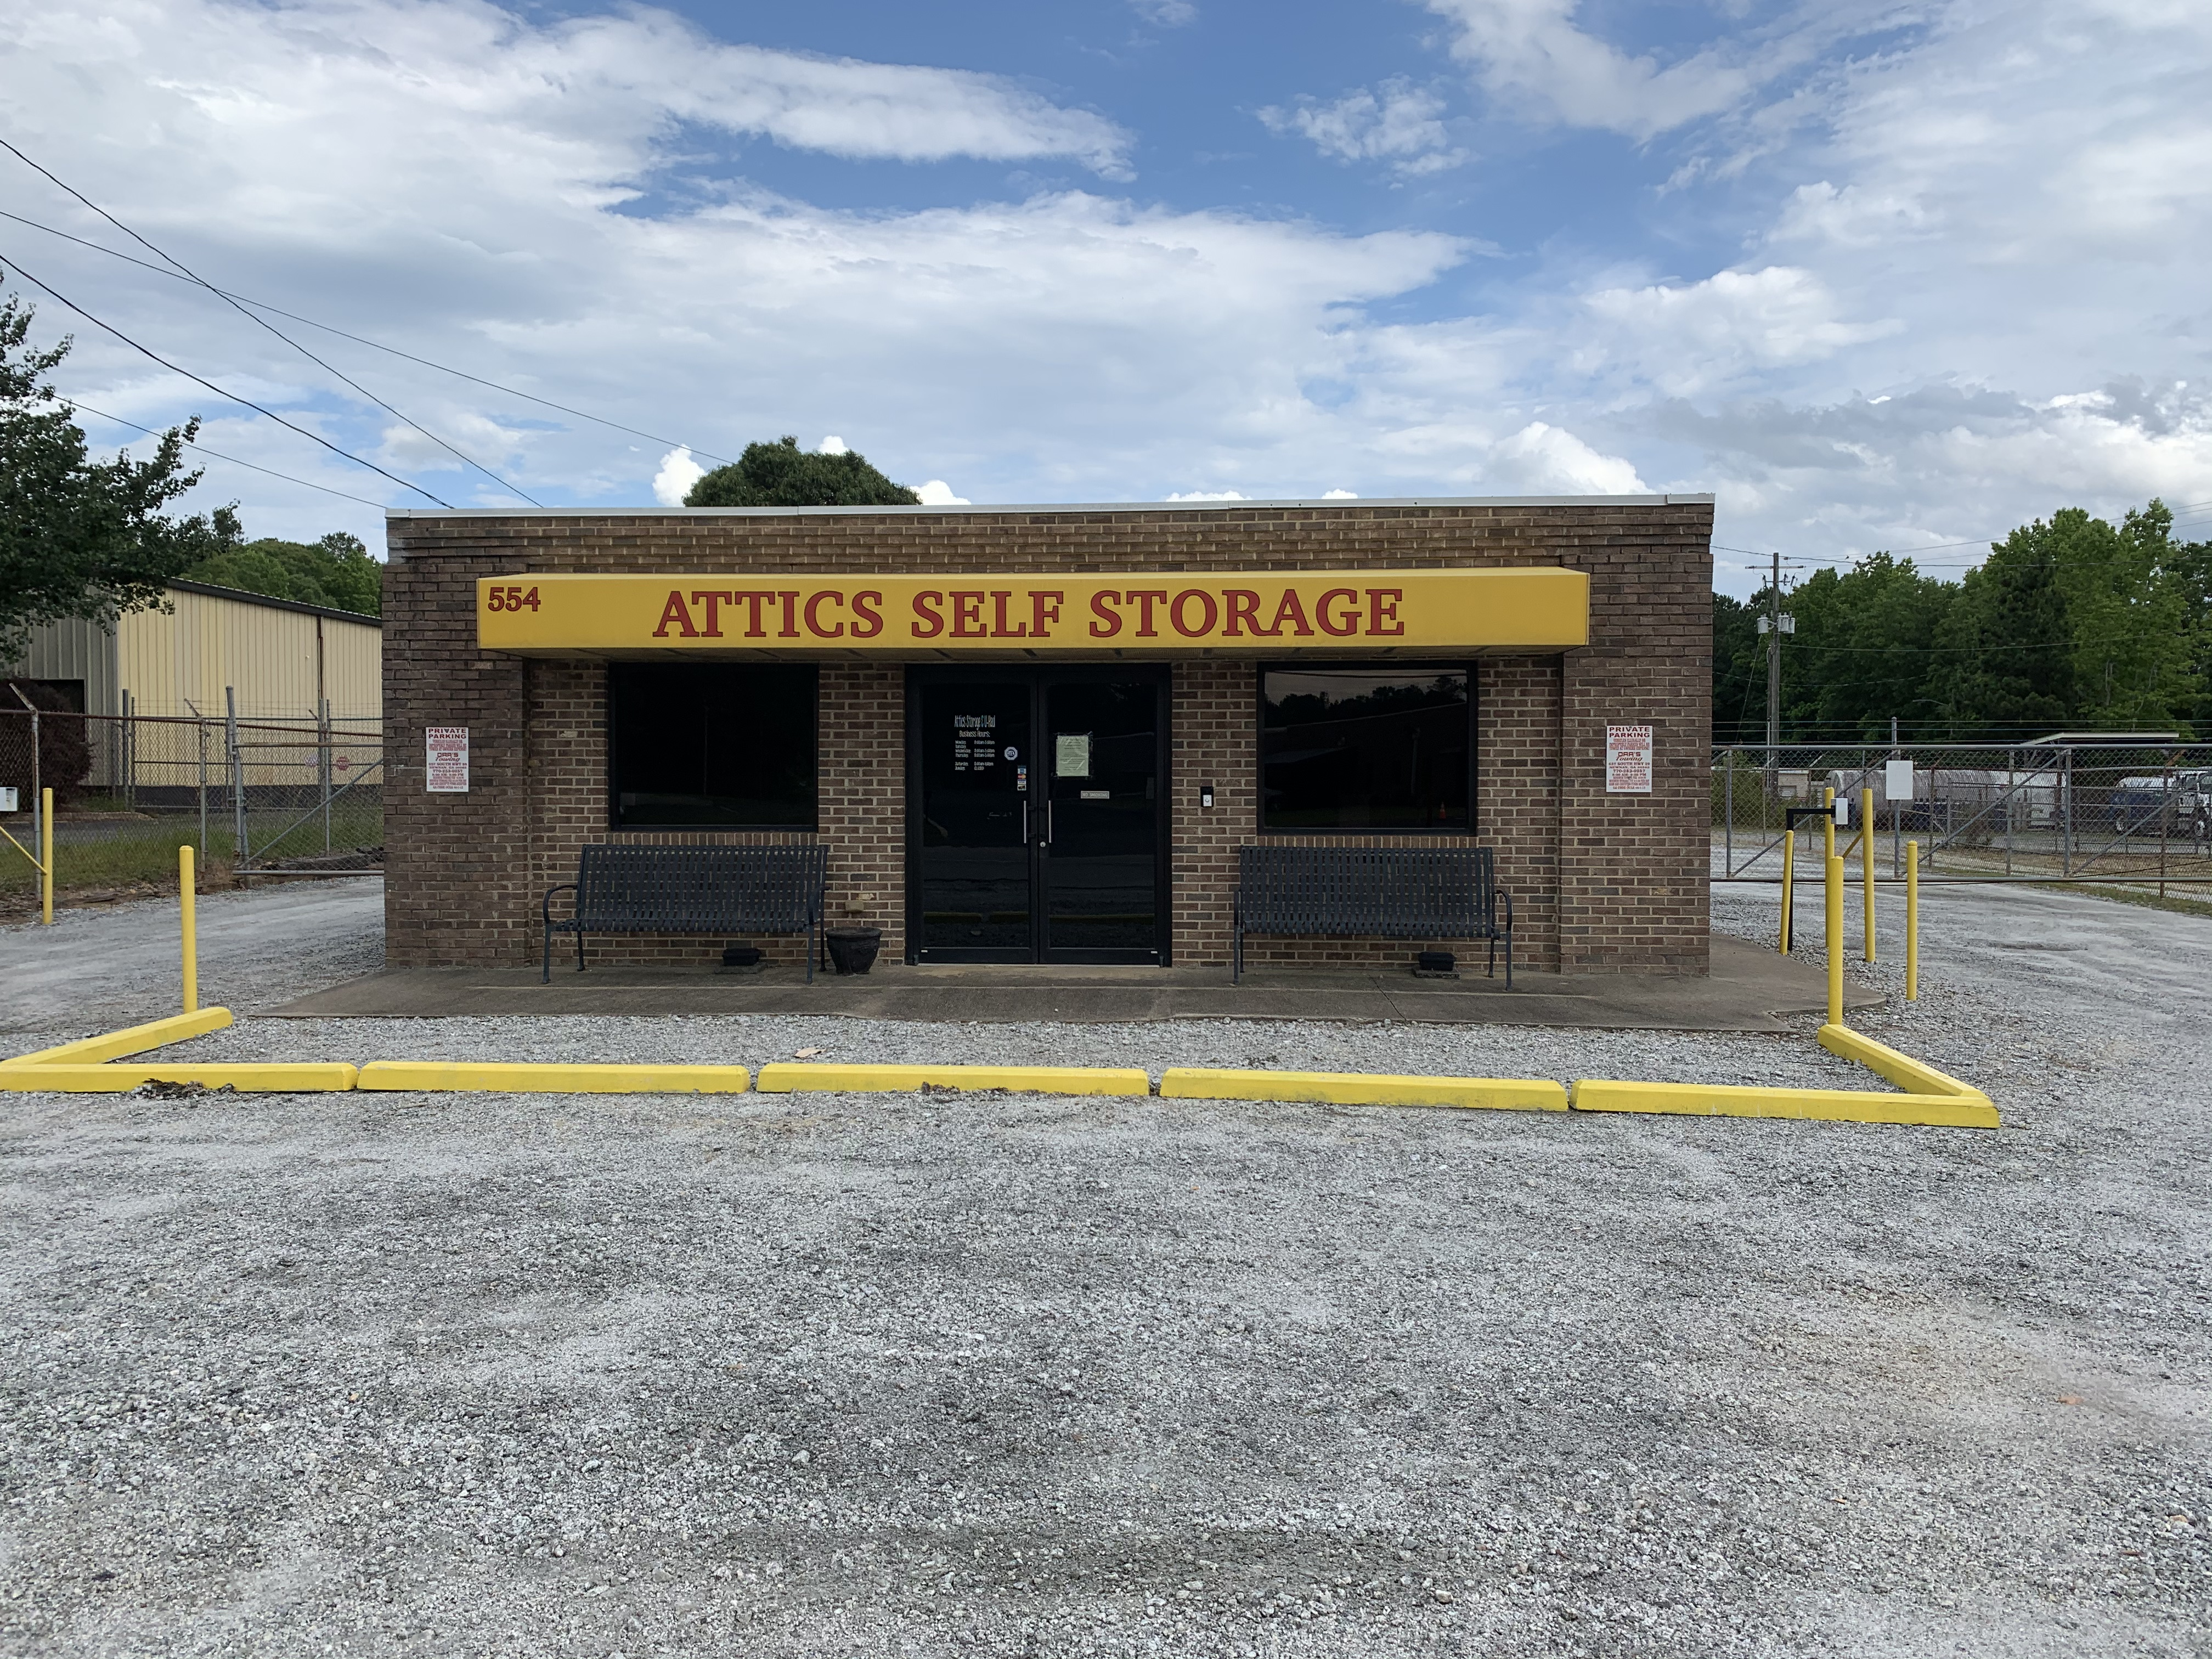 attics self storage in newnan, ga